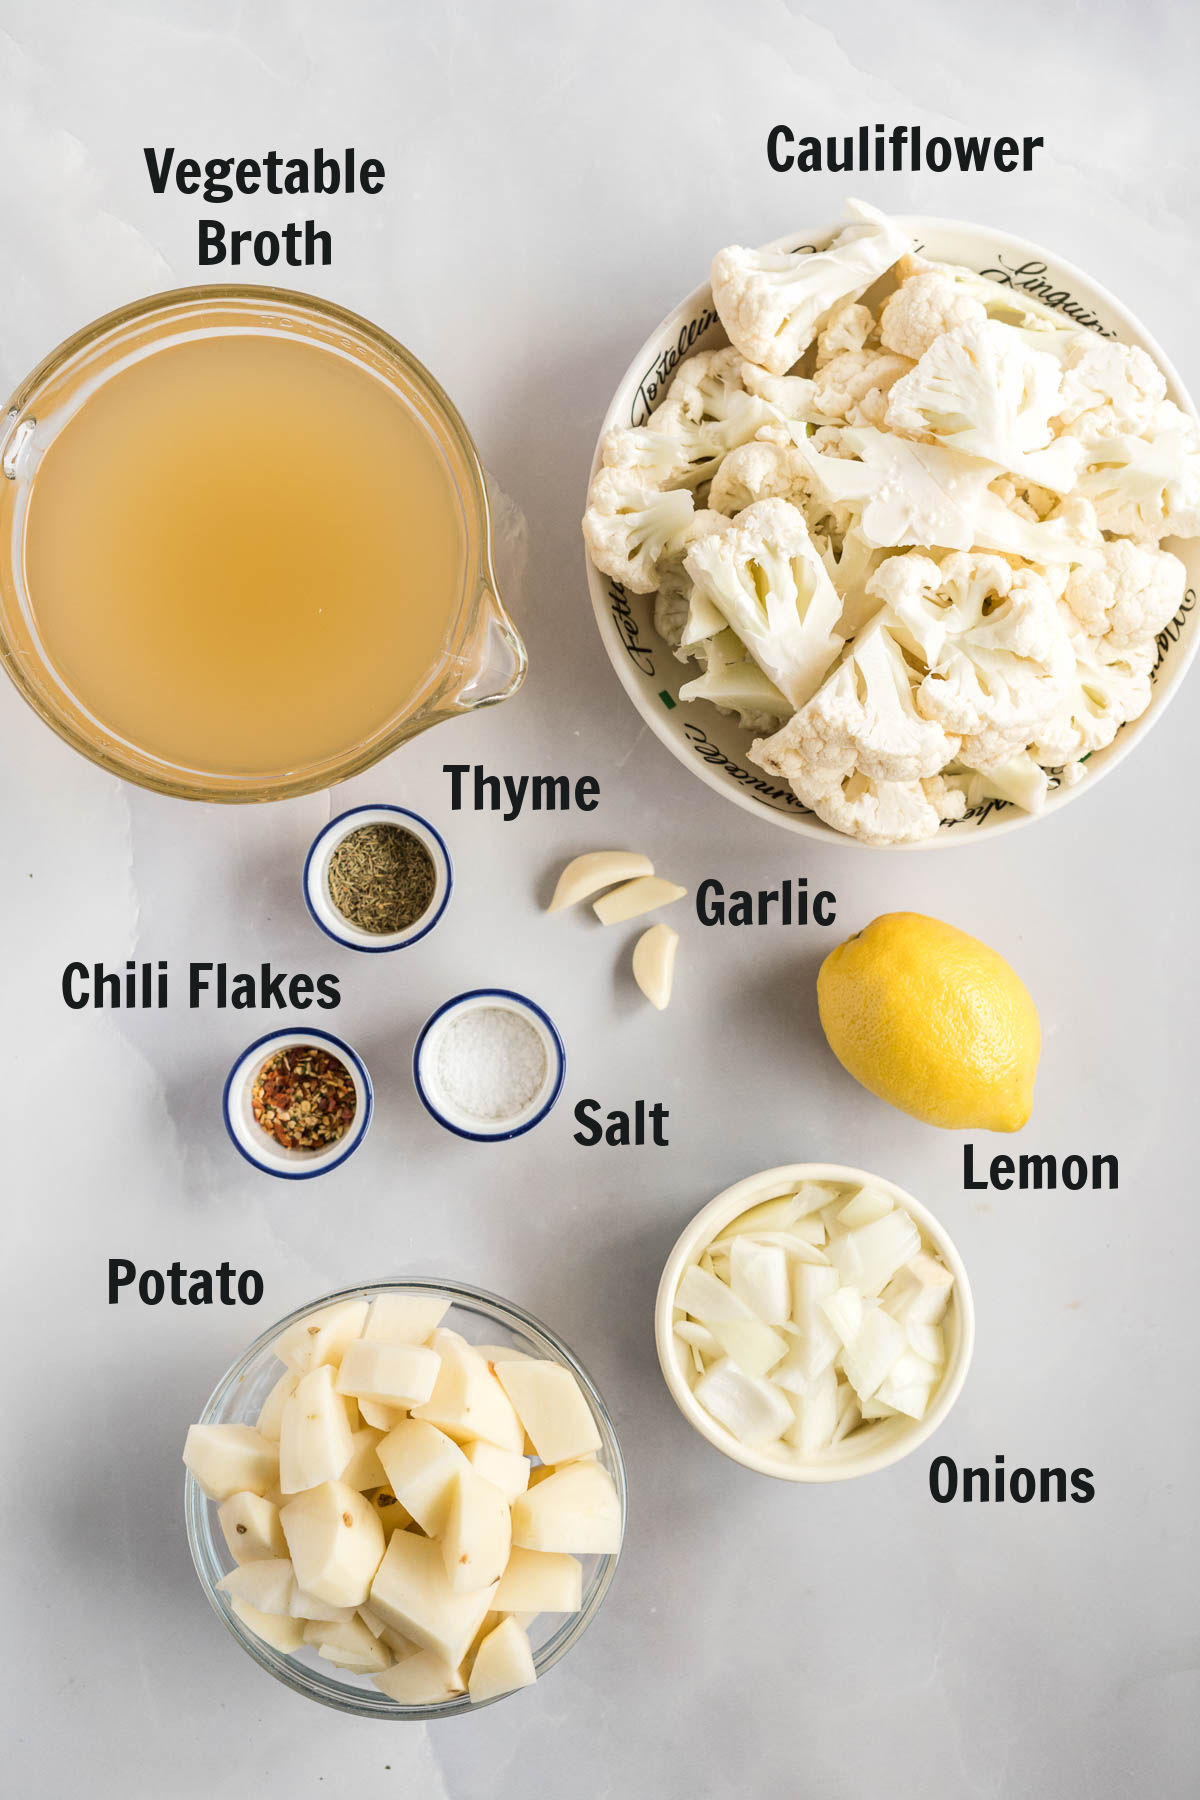 Ingredients for cauliflower soup.